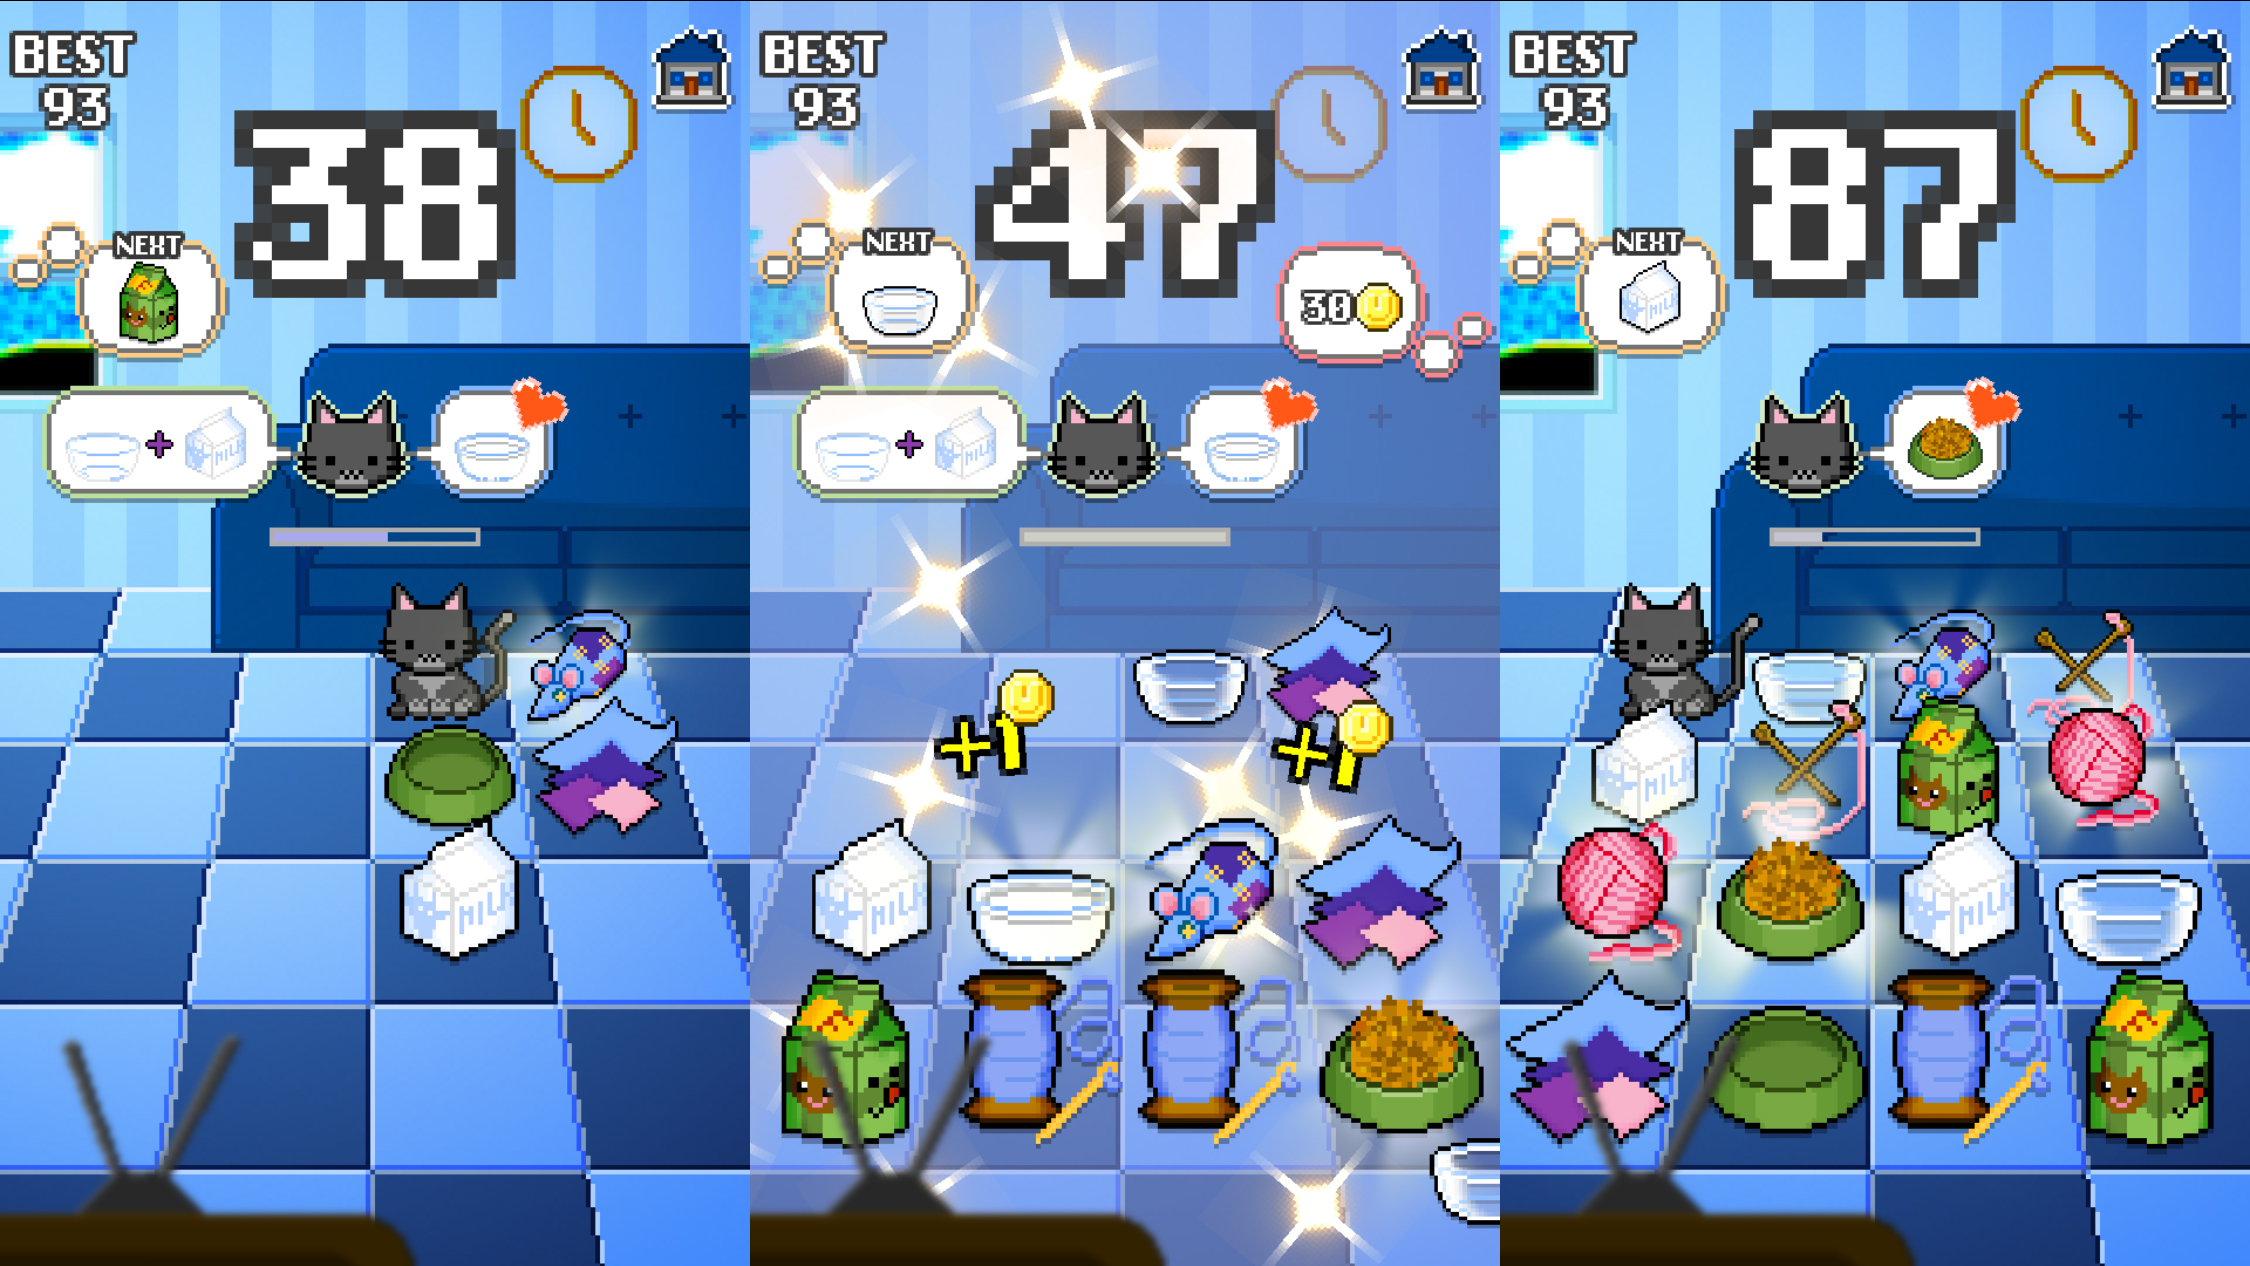 uqtbESrtzoxwX27AE3eCa3 - The best free Android games 2018